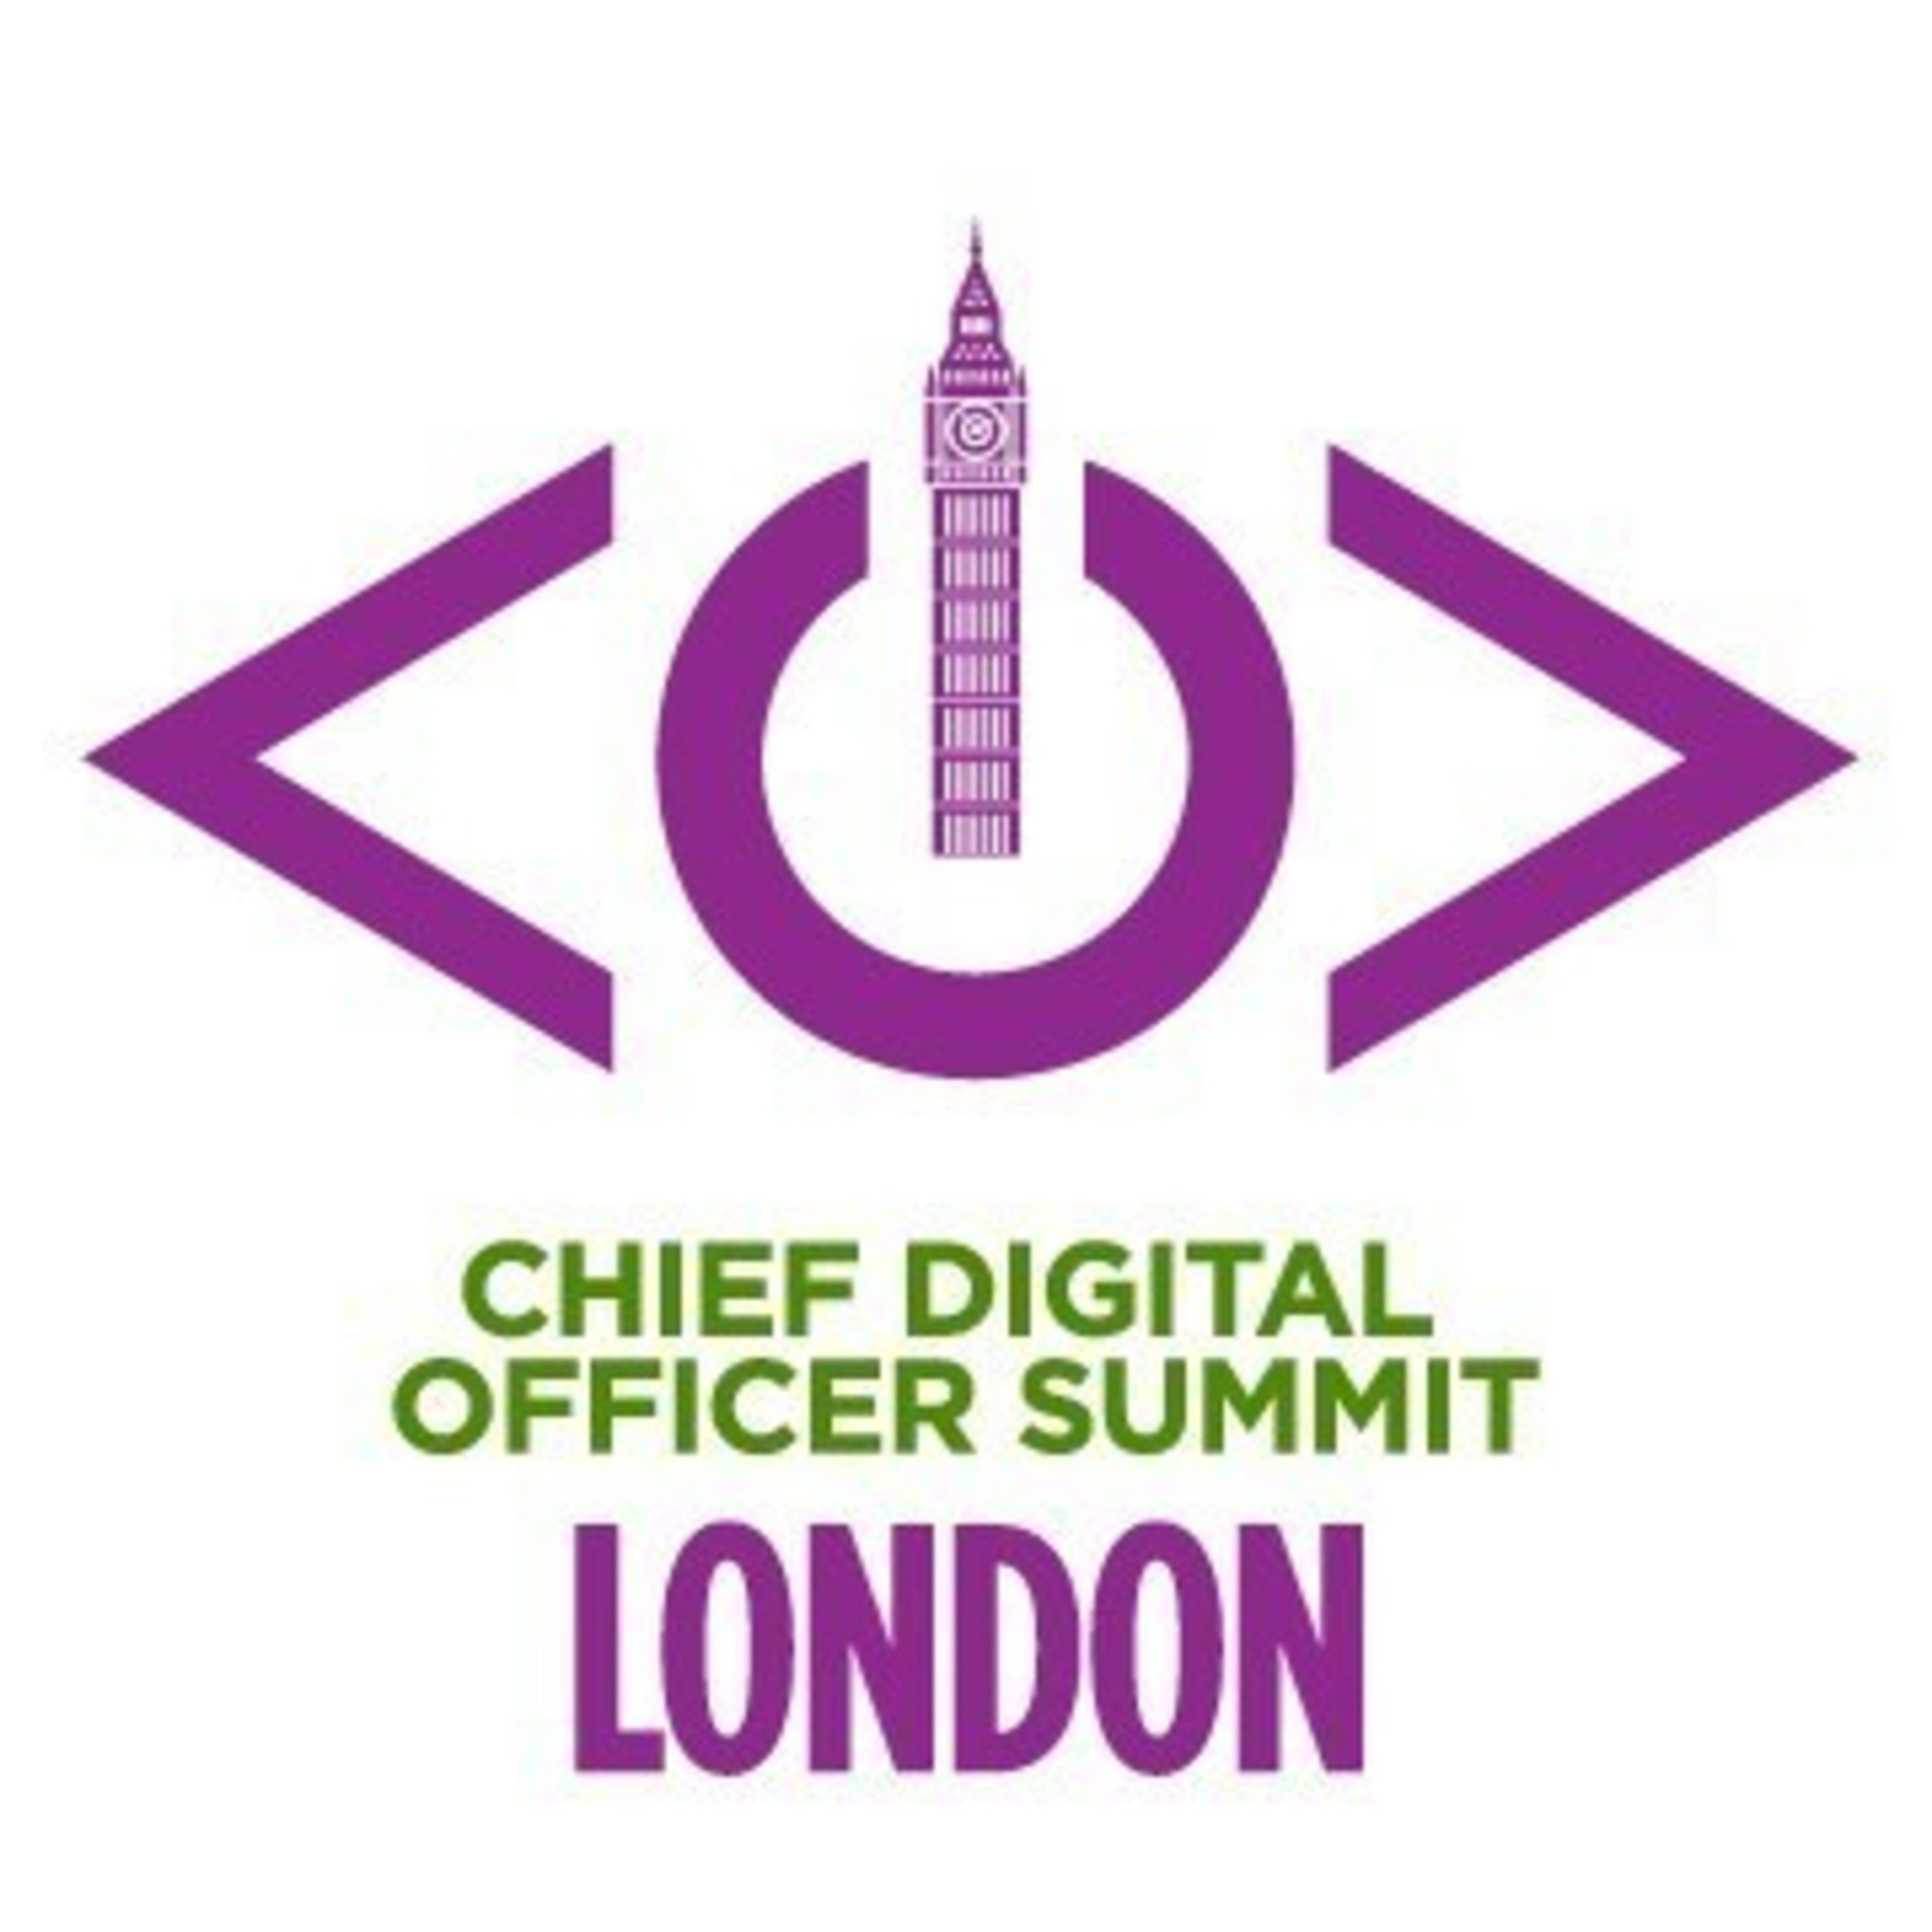 As the Number of Chief Digital Officers Doubles Again in 2015, U.K. CDO Summit Announces Agenda and Speakers for 2nd Annual Event in London